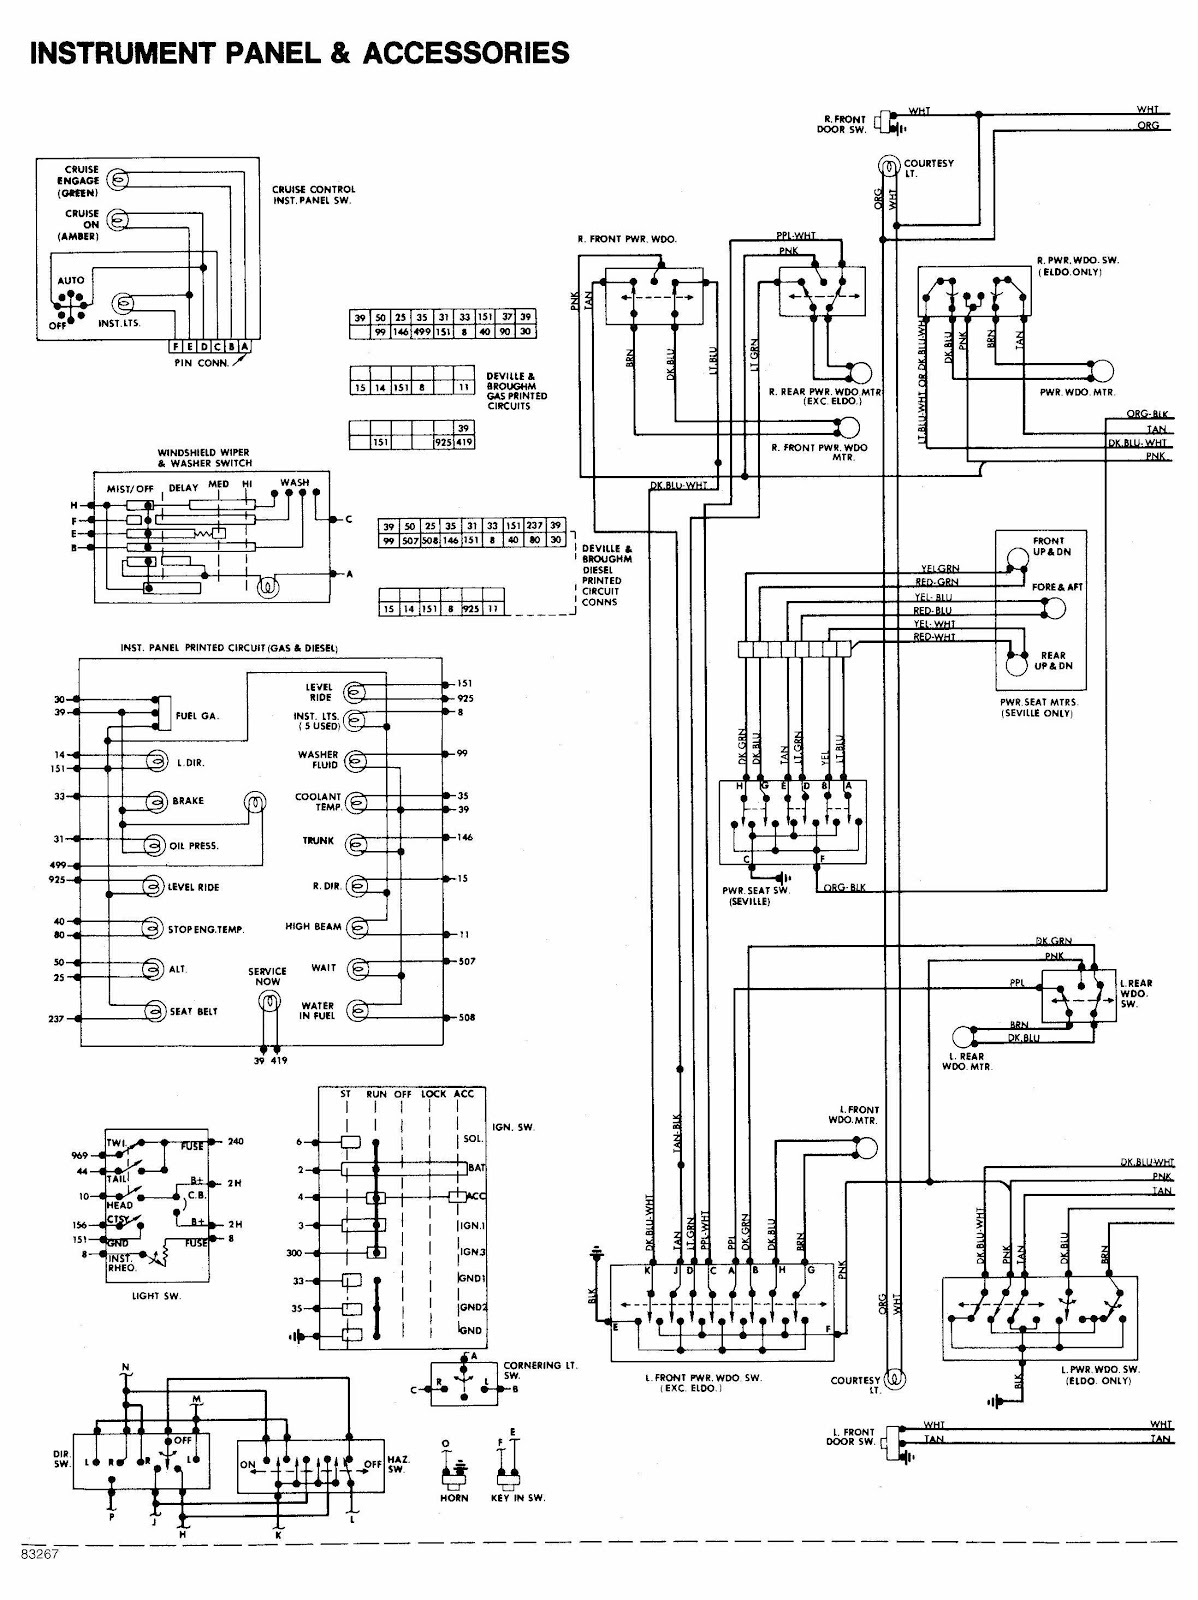 small resolution of cadillac de ville 1984 instrument panel and accessories 1962 cadillac wiring 1962 cadillac wiring